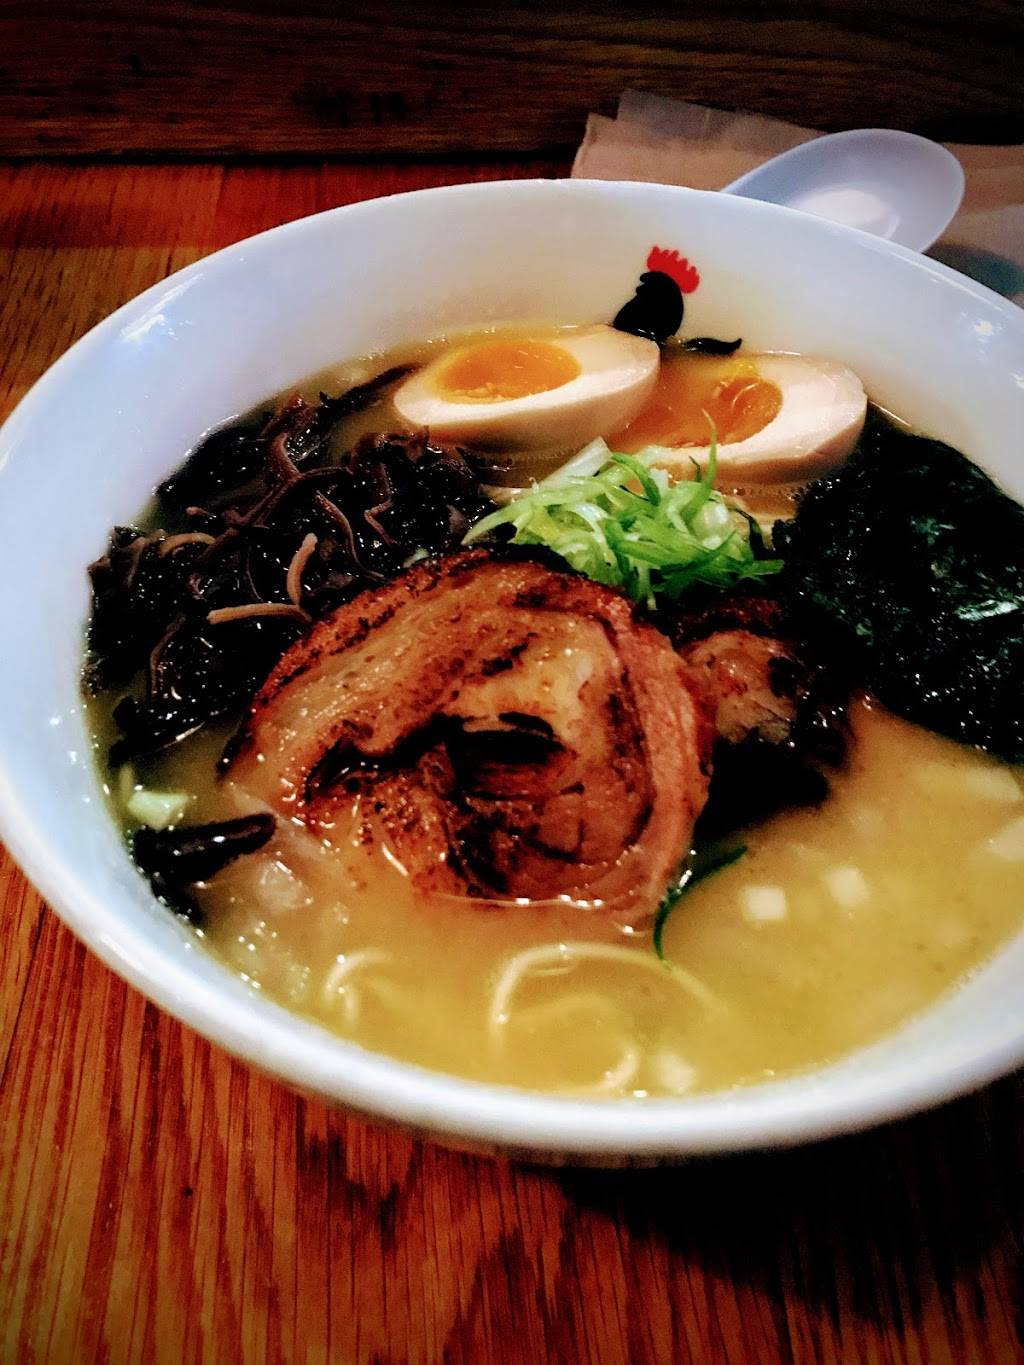 Totto Ramen Midtown East | restaurant | 248 E 52nd St, New York, NY 10022, USA | 2124210052 OR +1 212-421-0052